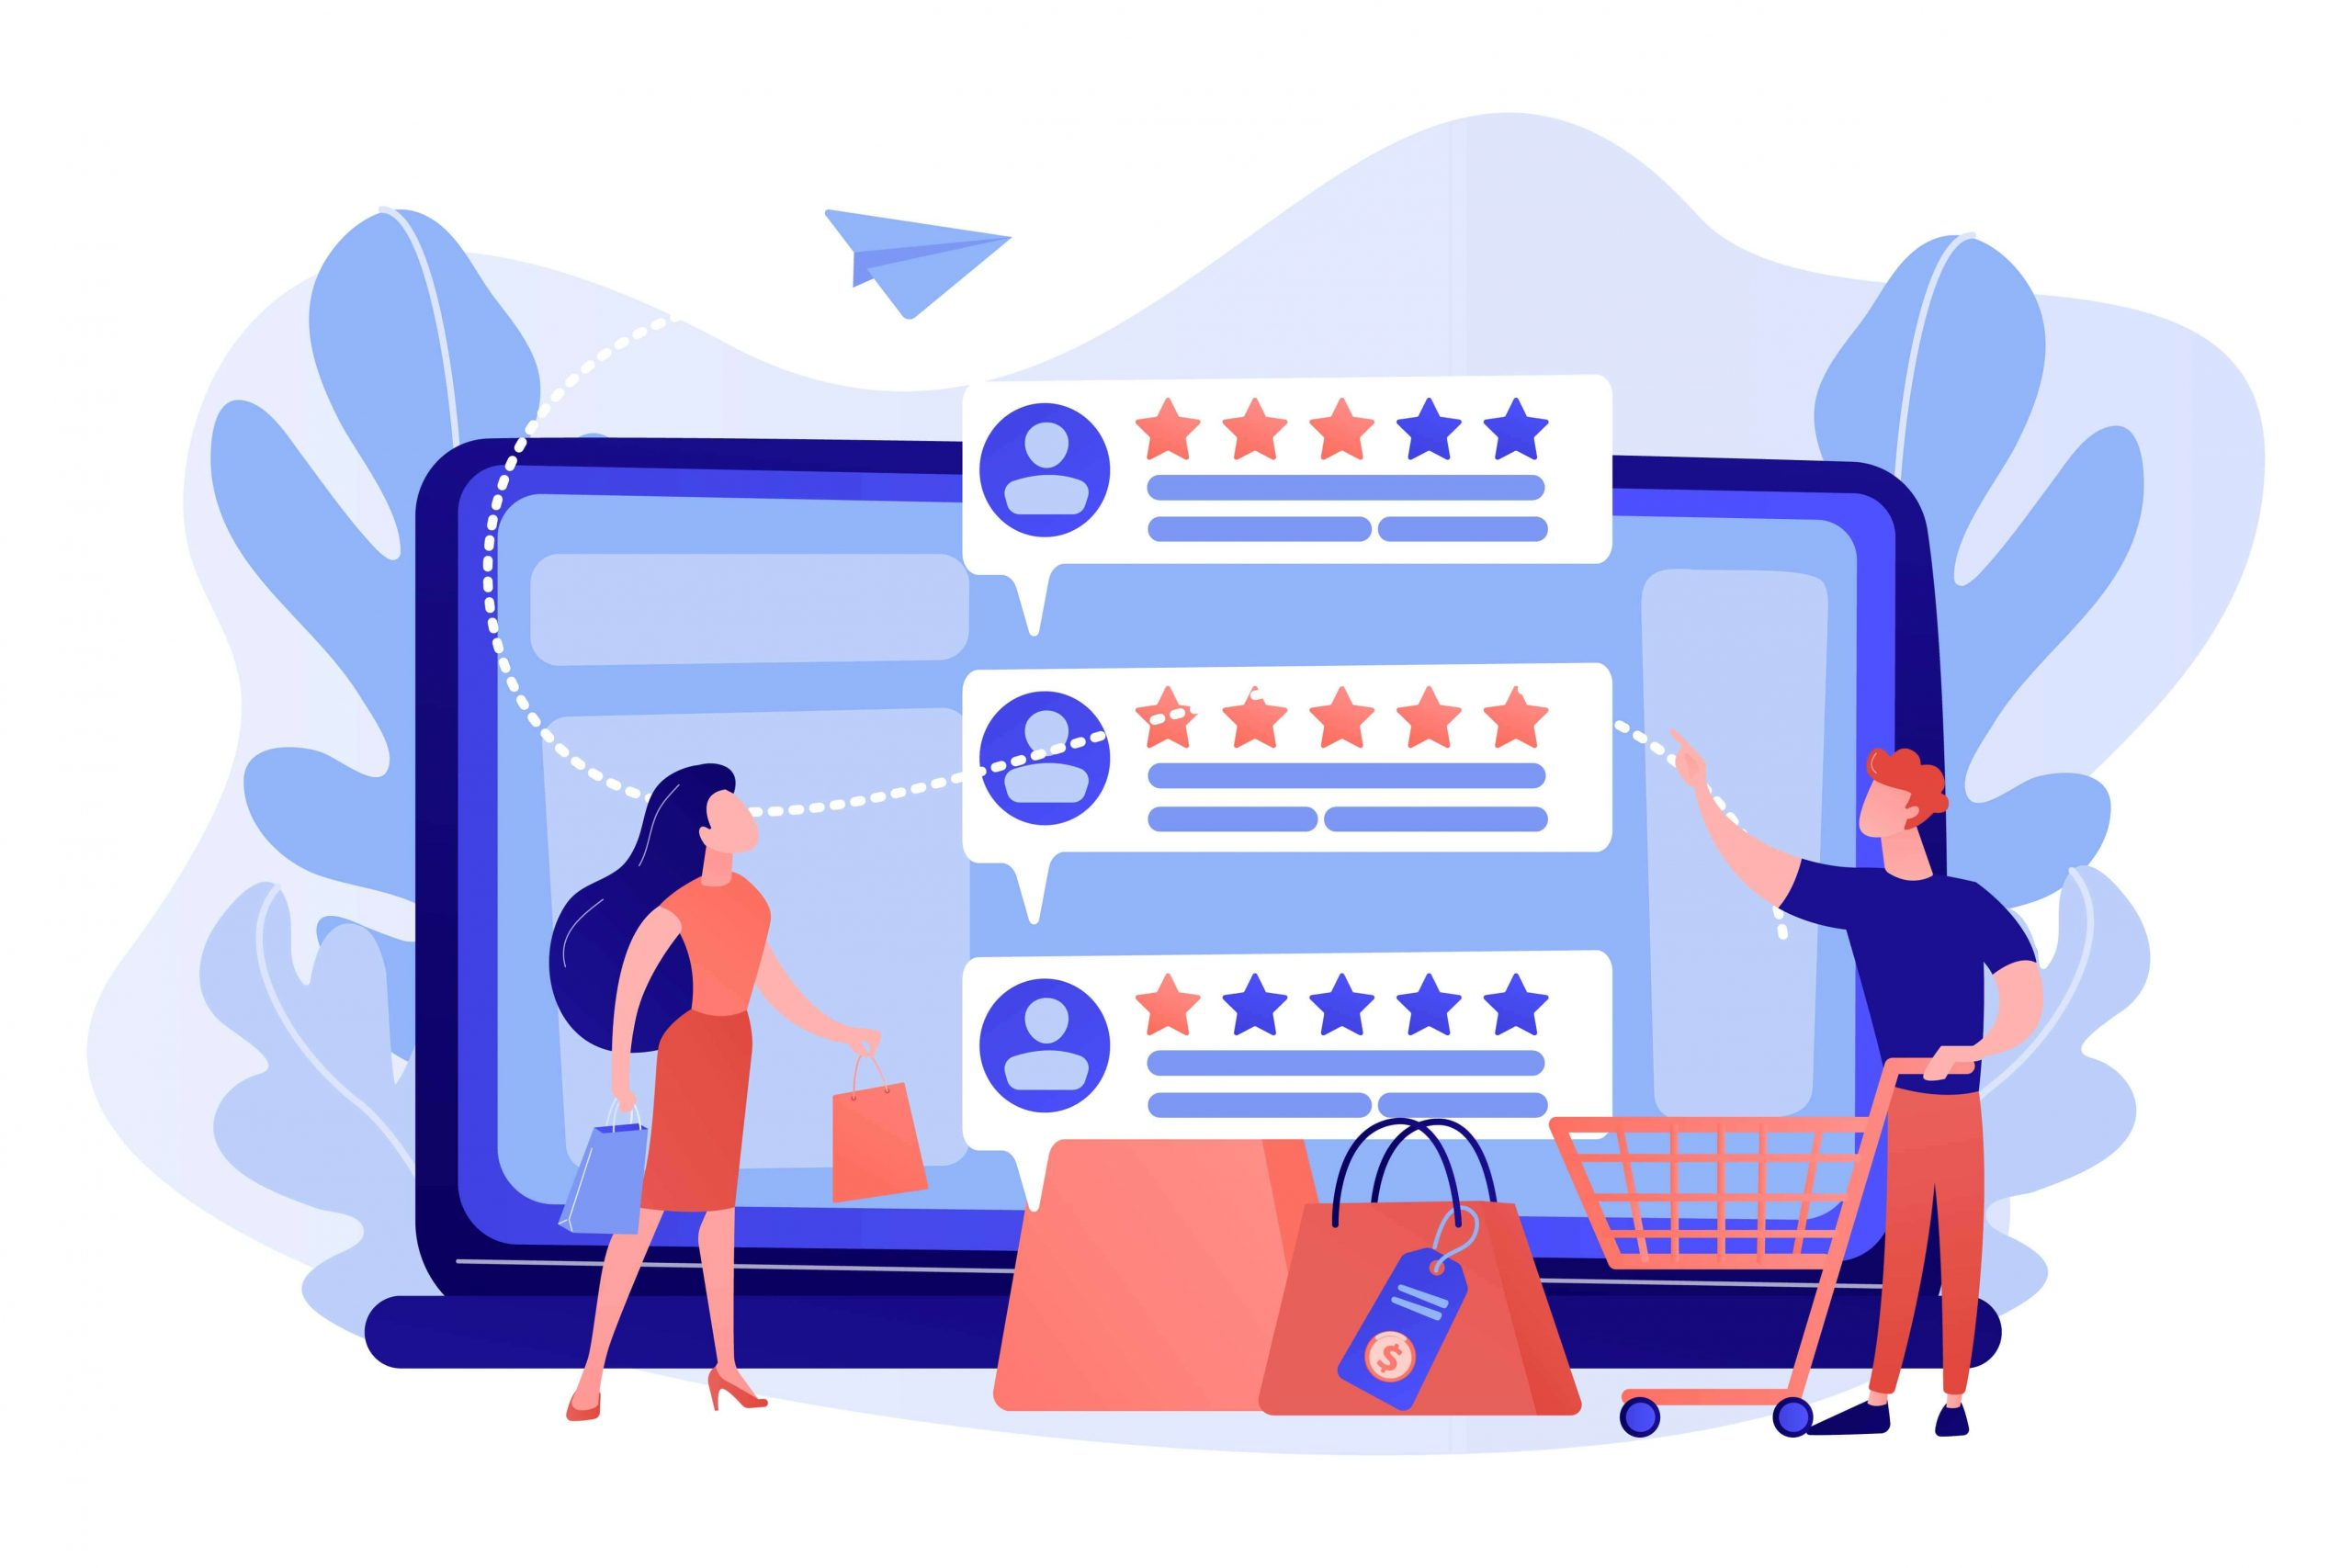 tiny people customers rating online with reputation system program